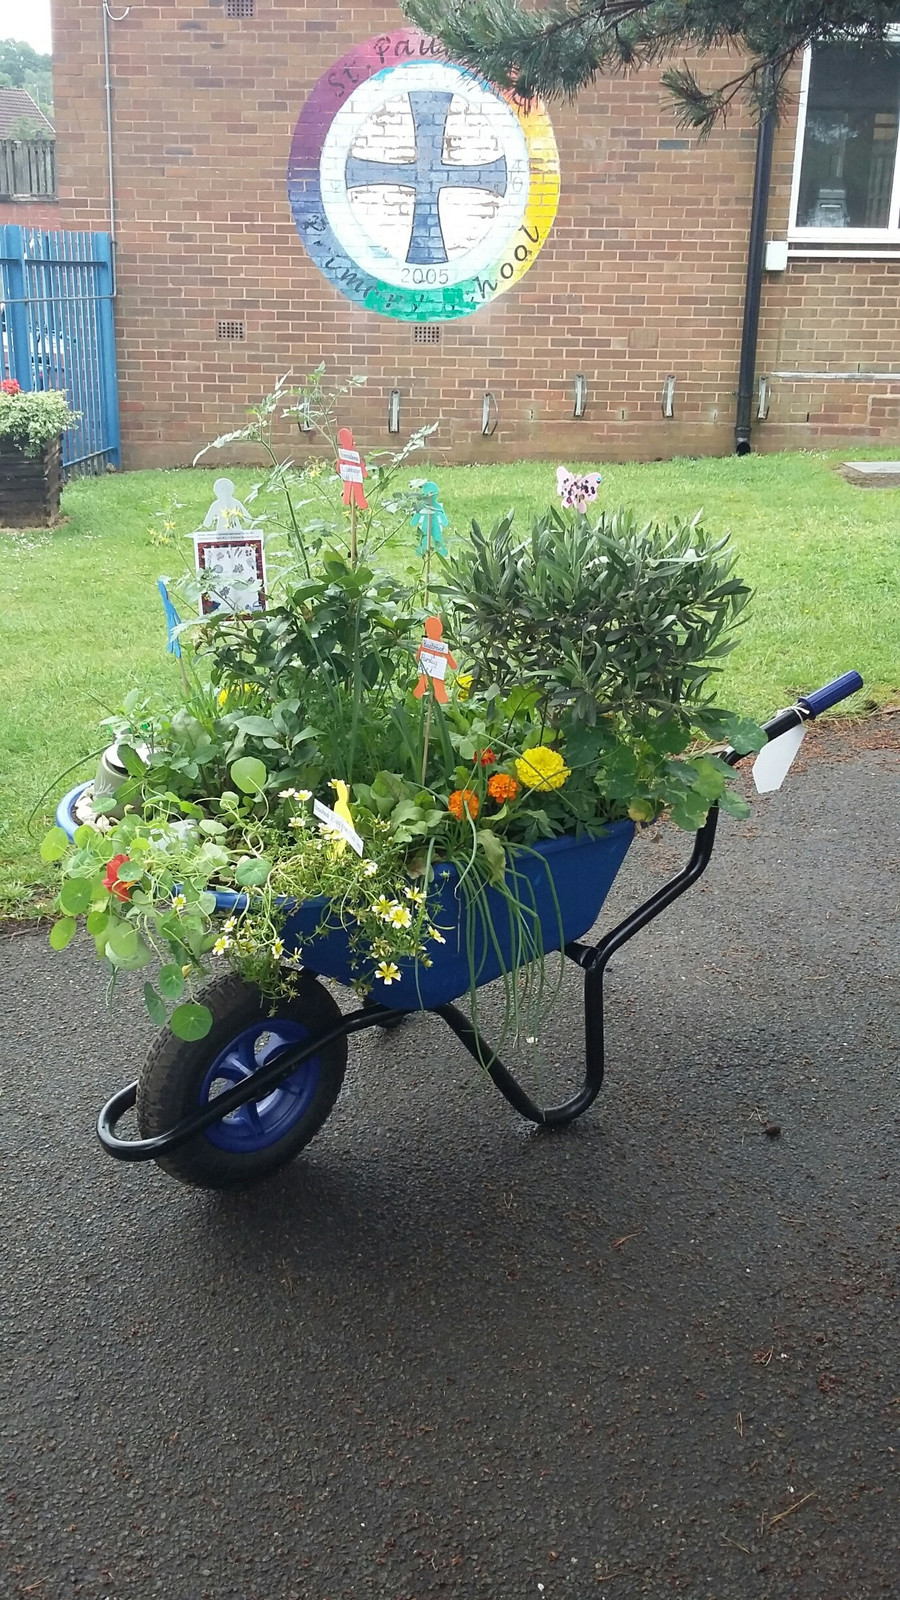 This wonderful wheelbarrow is just one of the end products achieved from the hard work put in by Mrs Rooney and the children of the Gardening Club over this year. They also took part in the recent Farmer's Market and sold produce they had grown in school and raised a fabulous total of £173.00 - enterprise towards the purchase of new produce to start again in the new year. Well done to everyone!